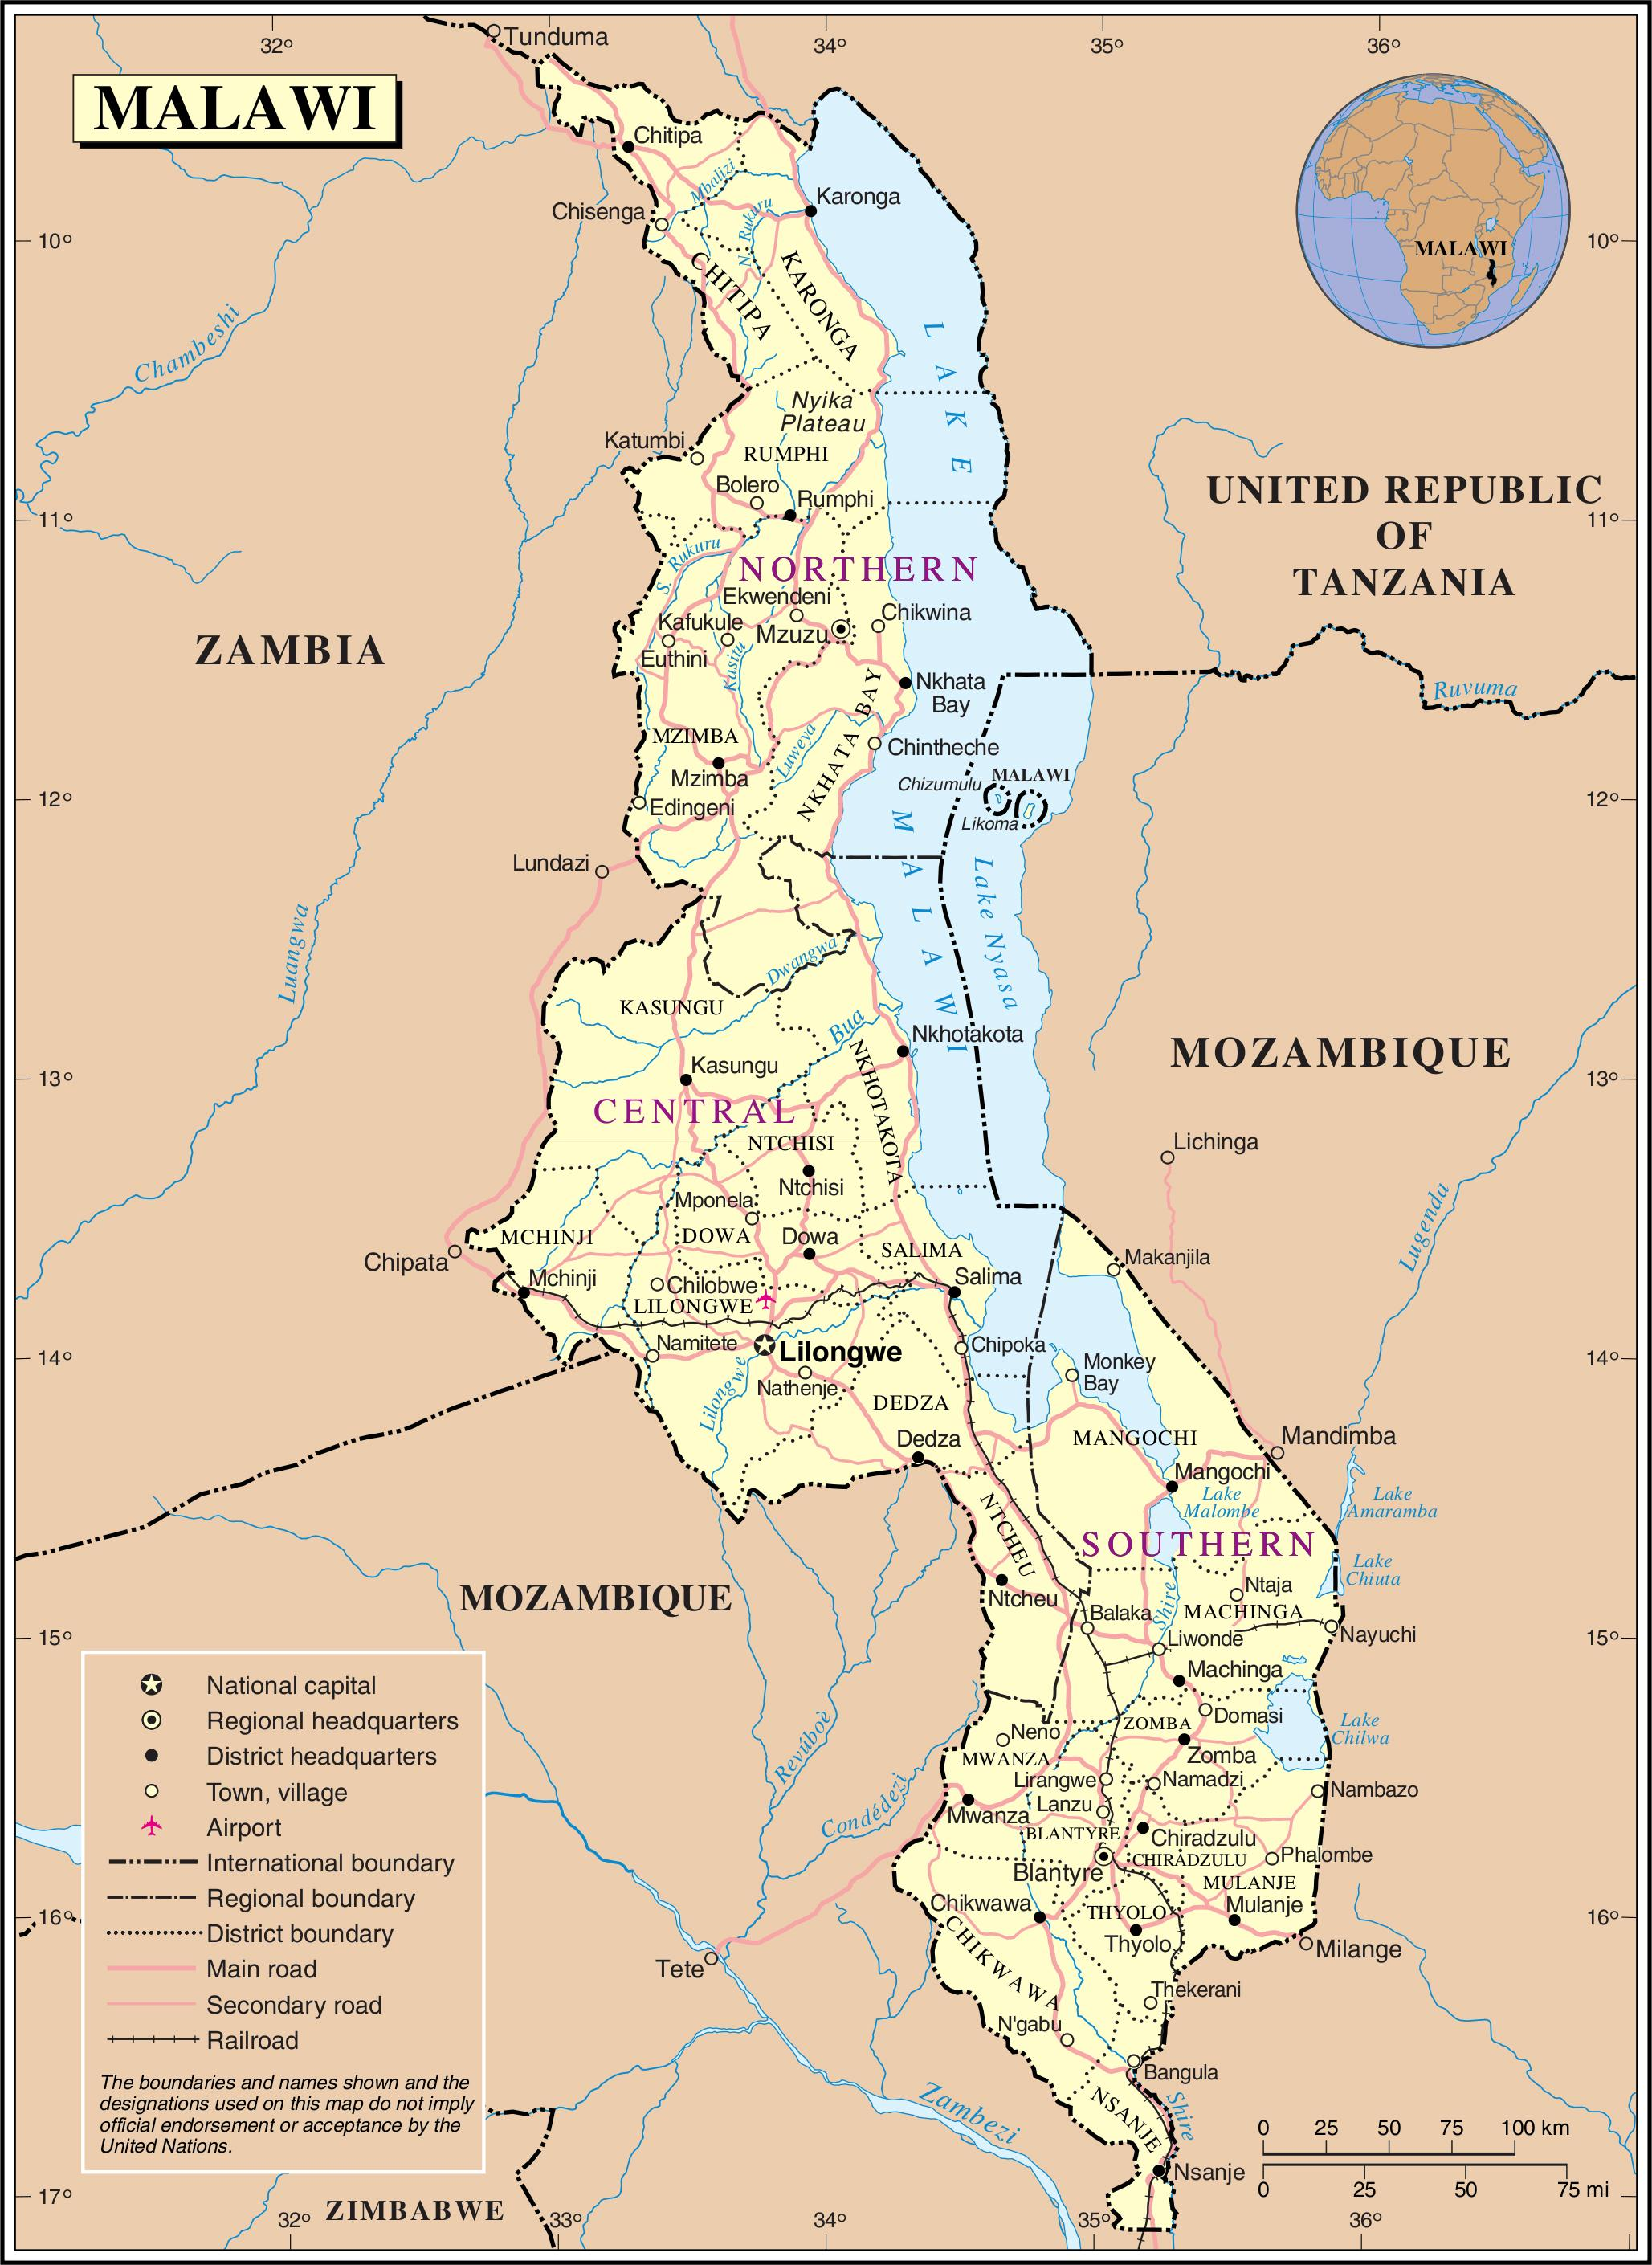 Malawi On Africa Map.Malawi Road Map Map Of Malawi Showing Roads Eastern Africa Africa